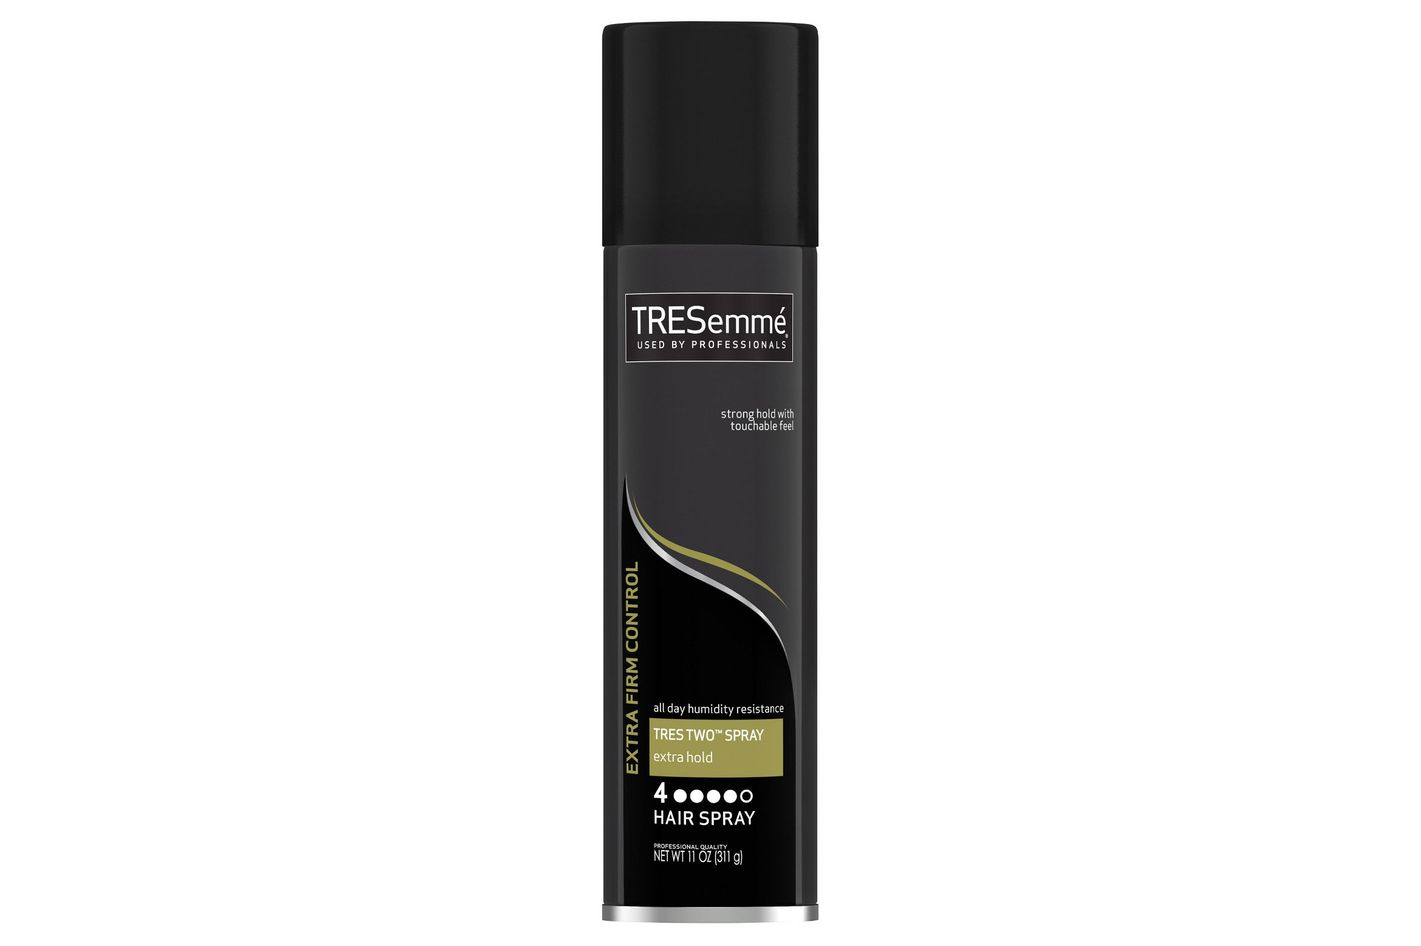 TRESemmé TRES TWO Hair Spray